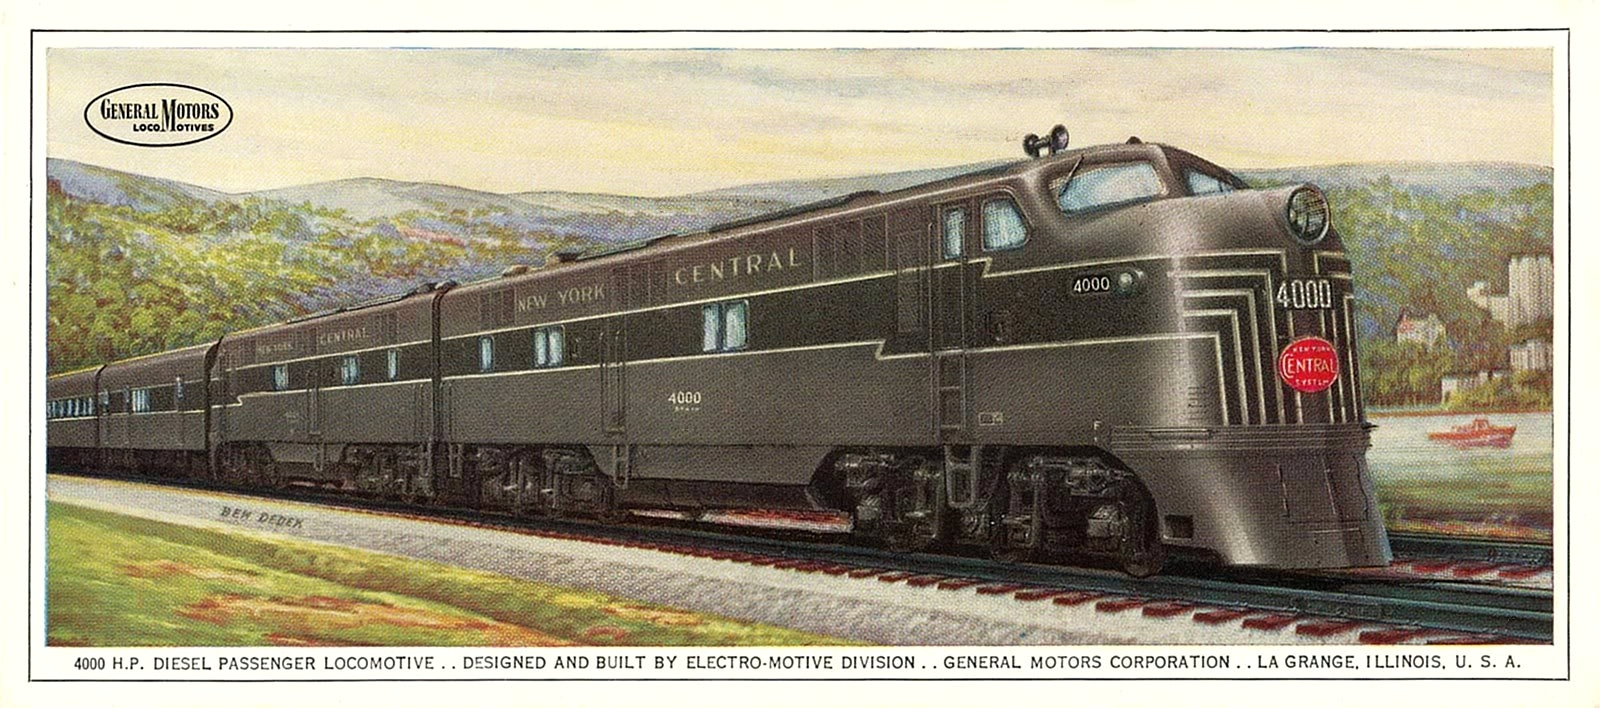 Transpress Nz General Motors E7 Locomotive Artwork